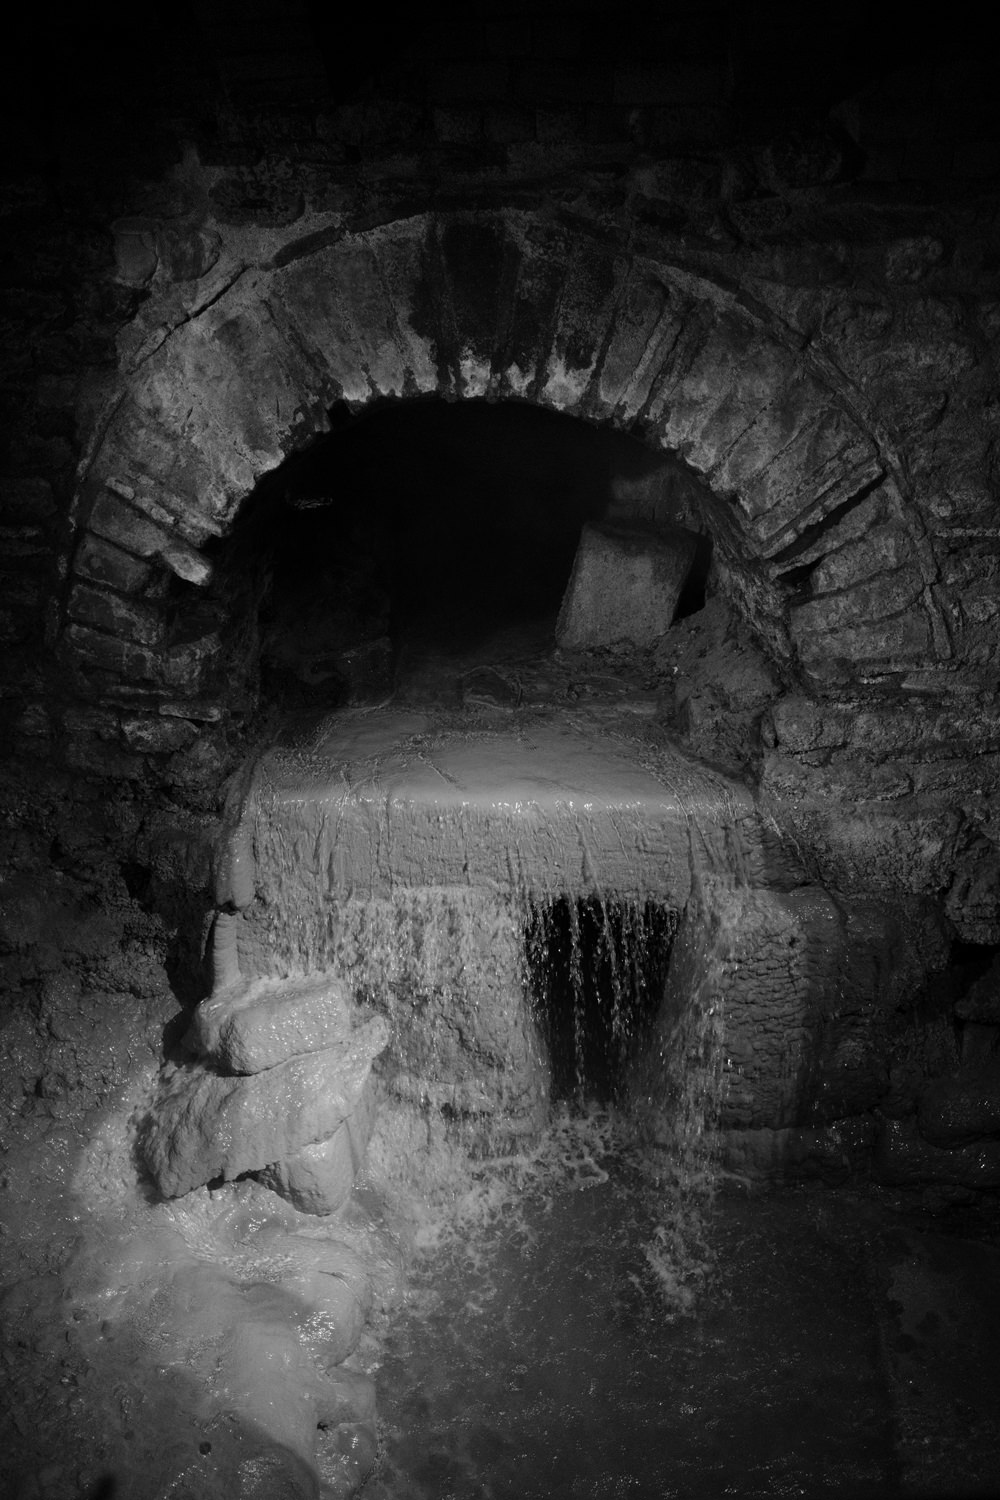 A semi-circular tunnel with water pouring out of the end.